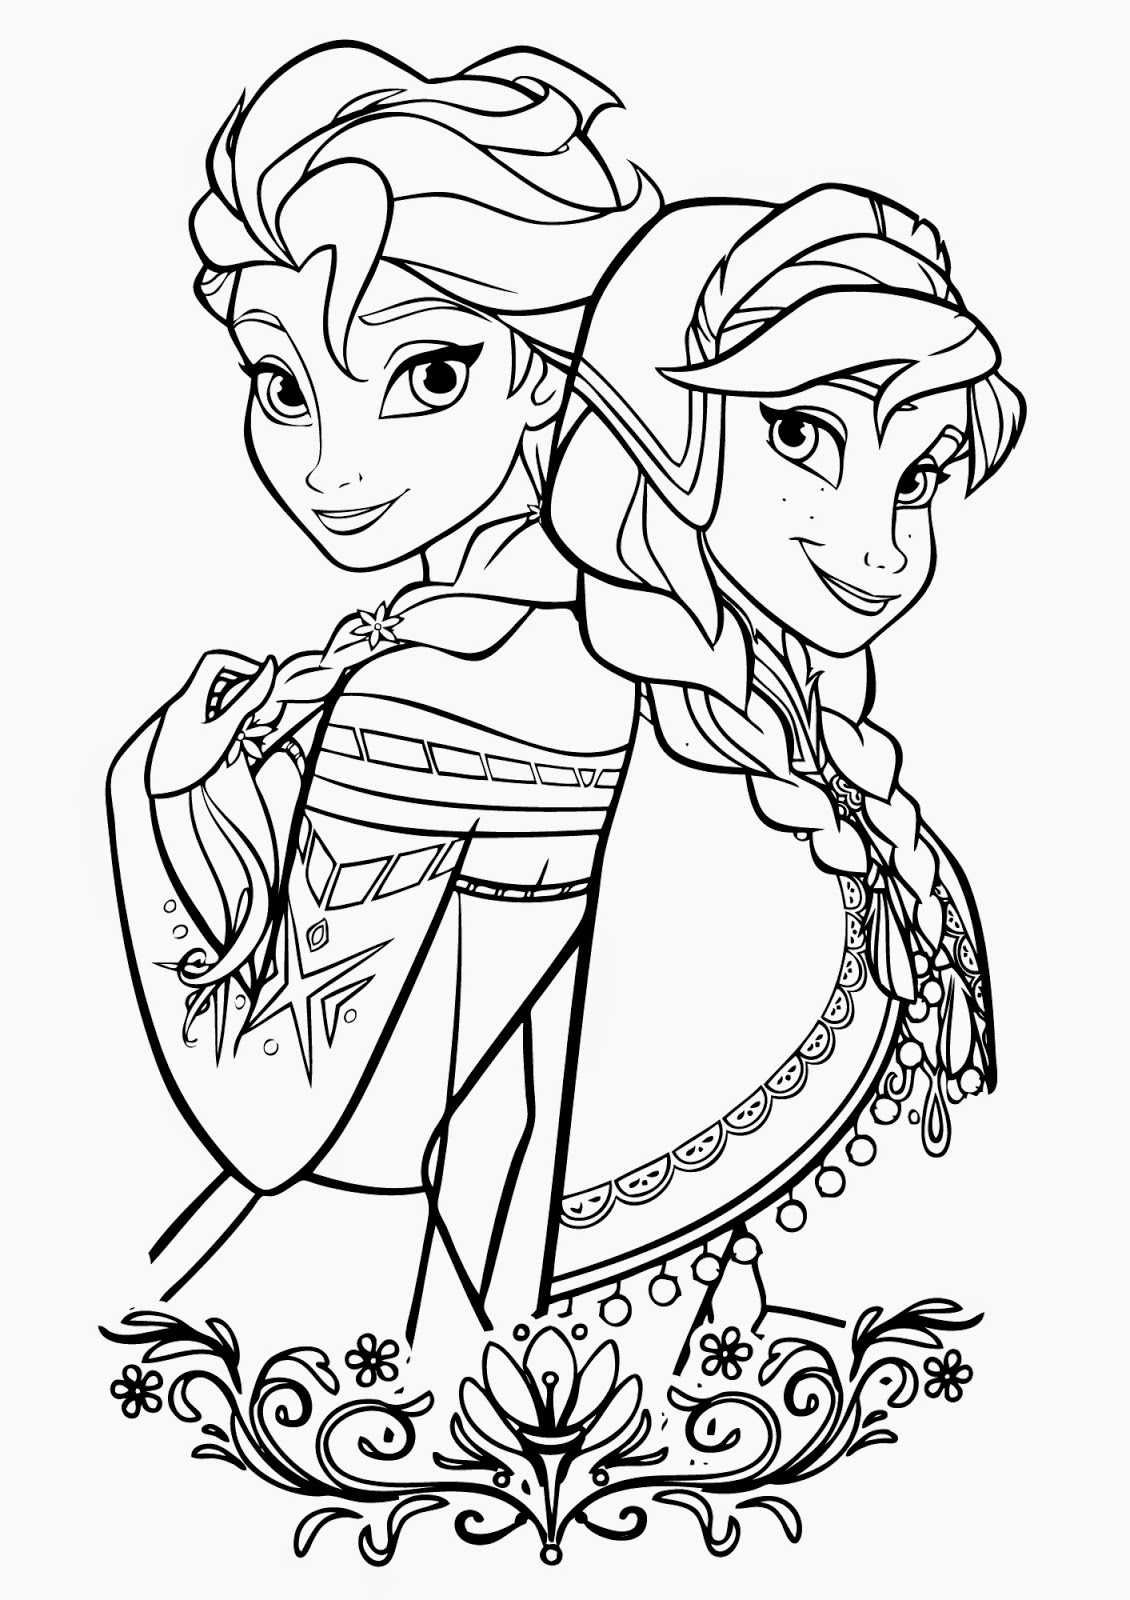 frozen coloring pages for print - photo#22